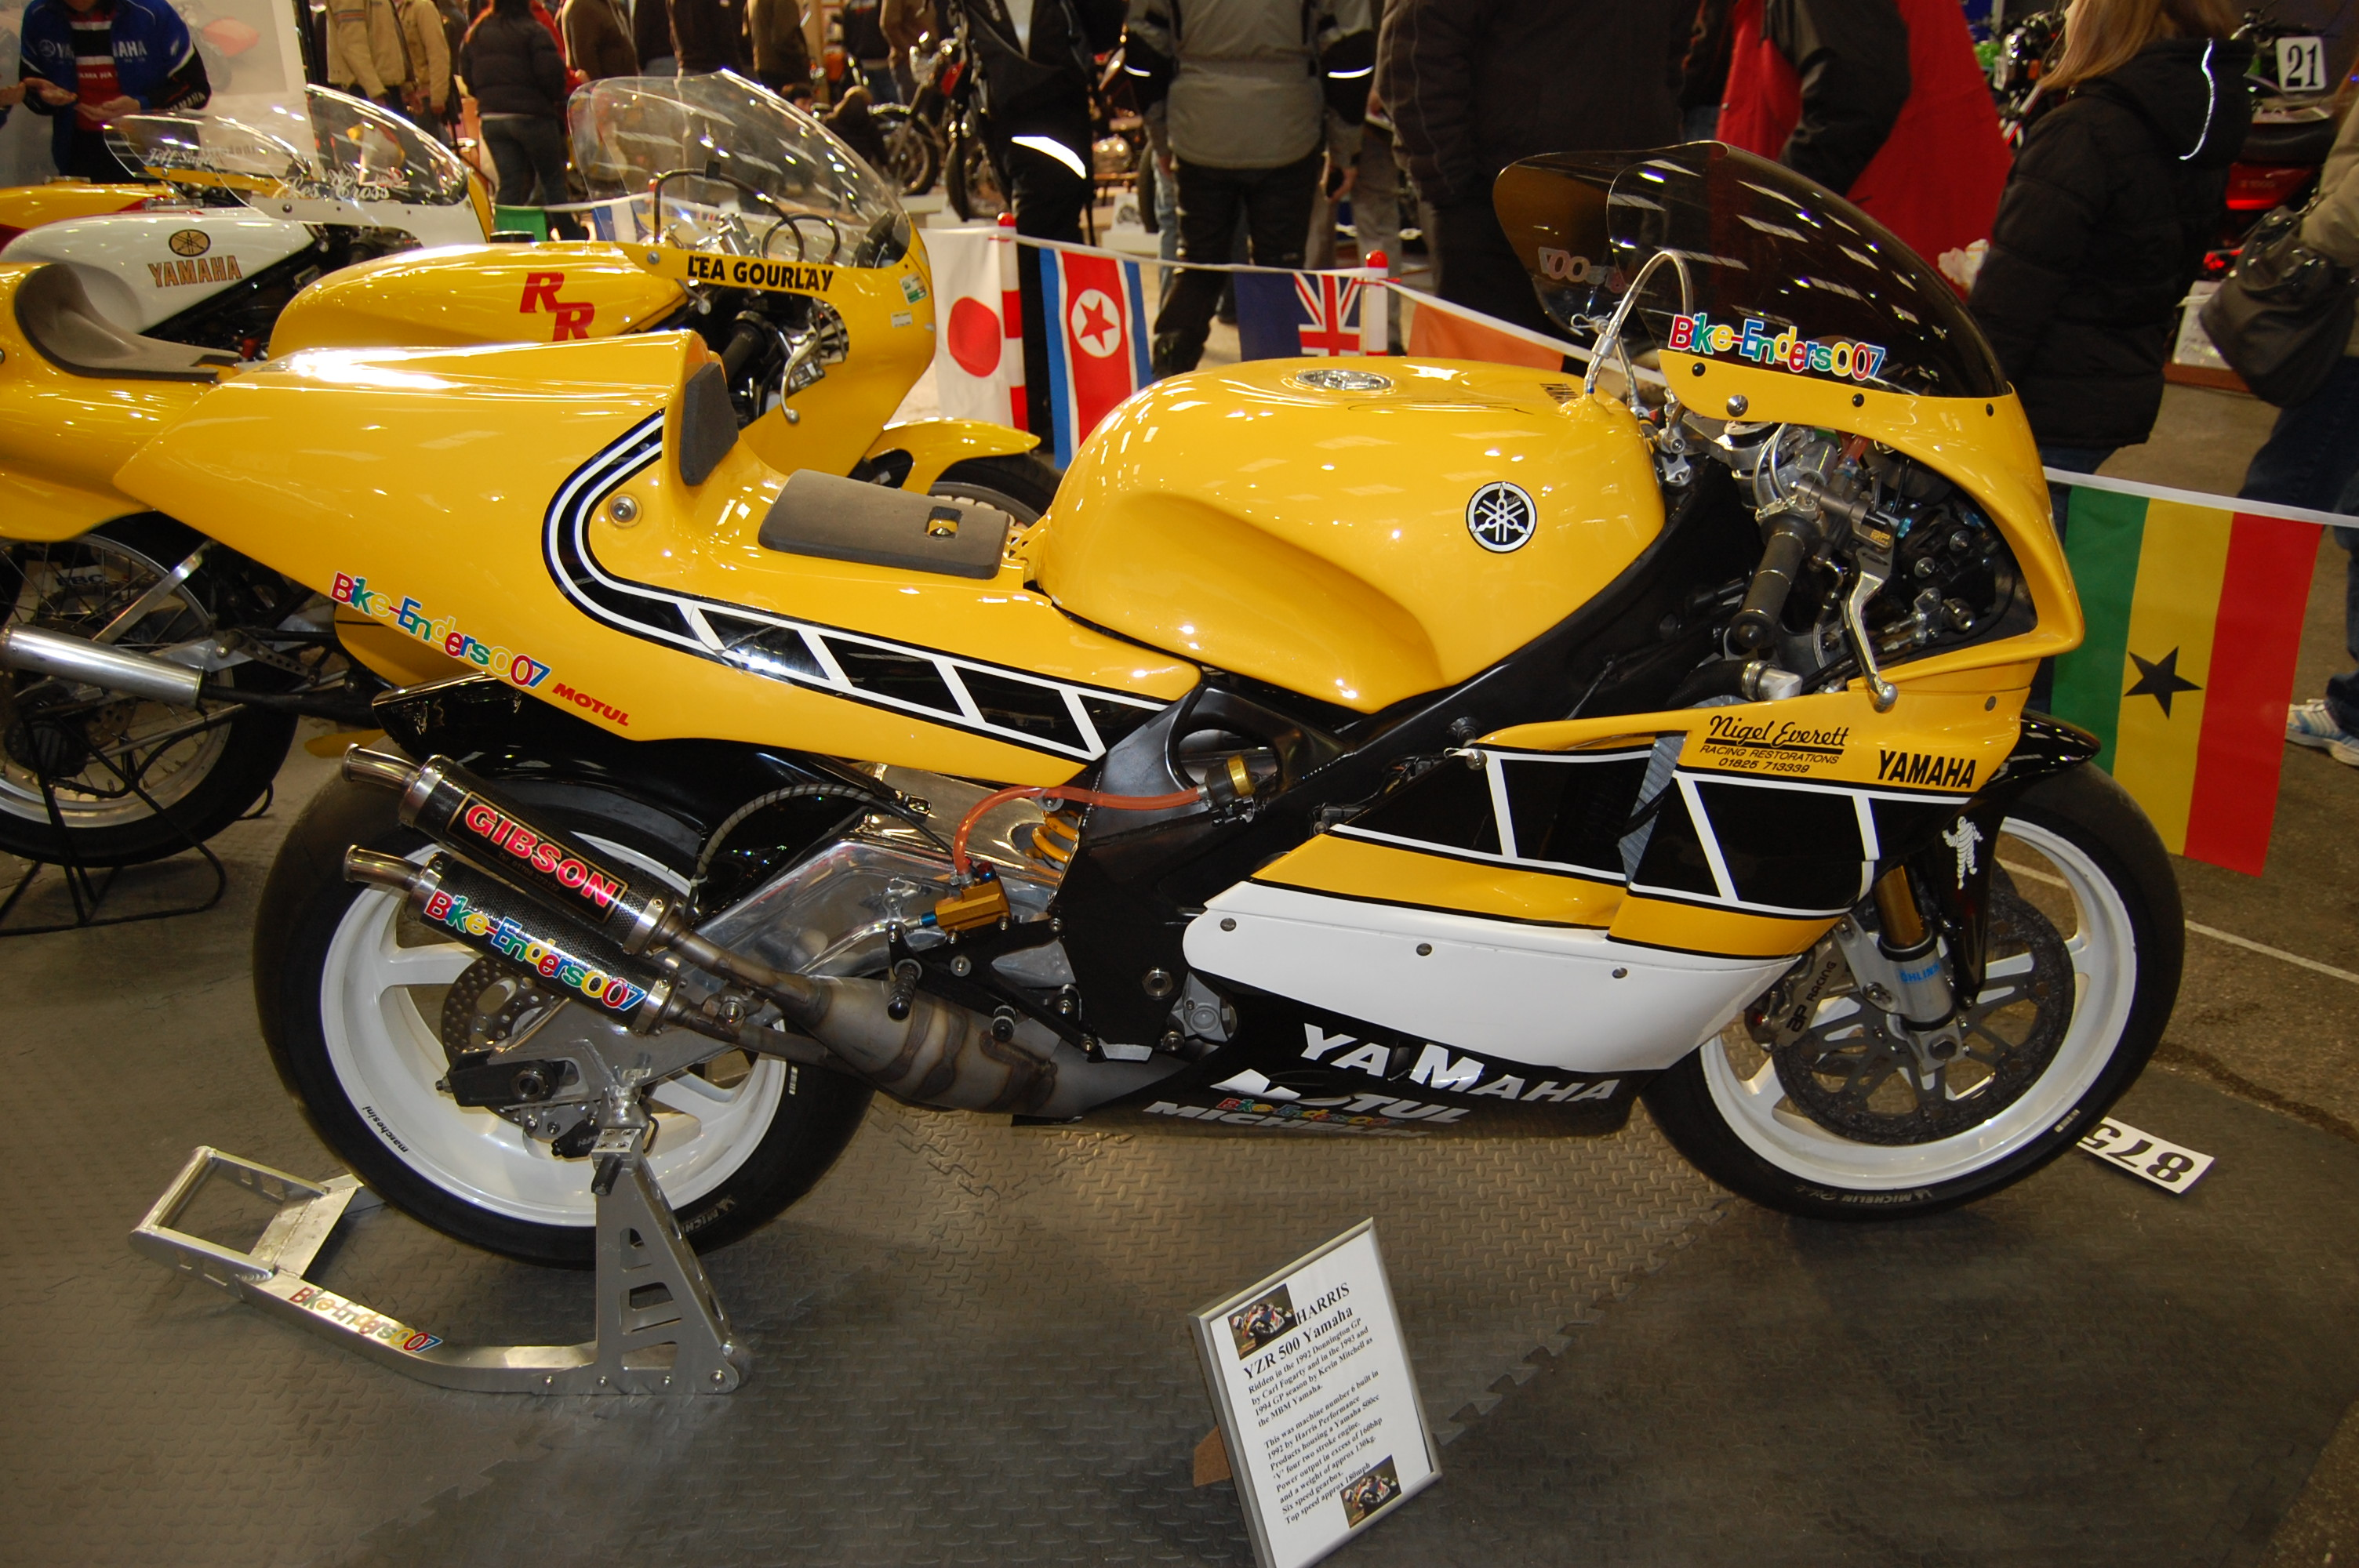 The Yzr500 The Yamaha Motor Corporation S Entry For 500cc